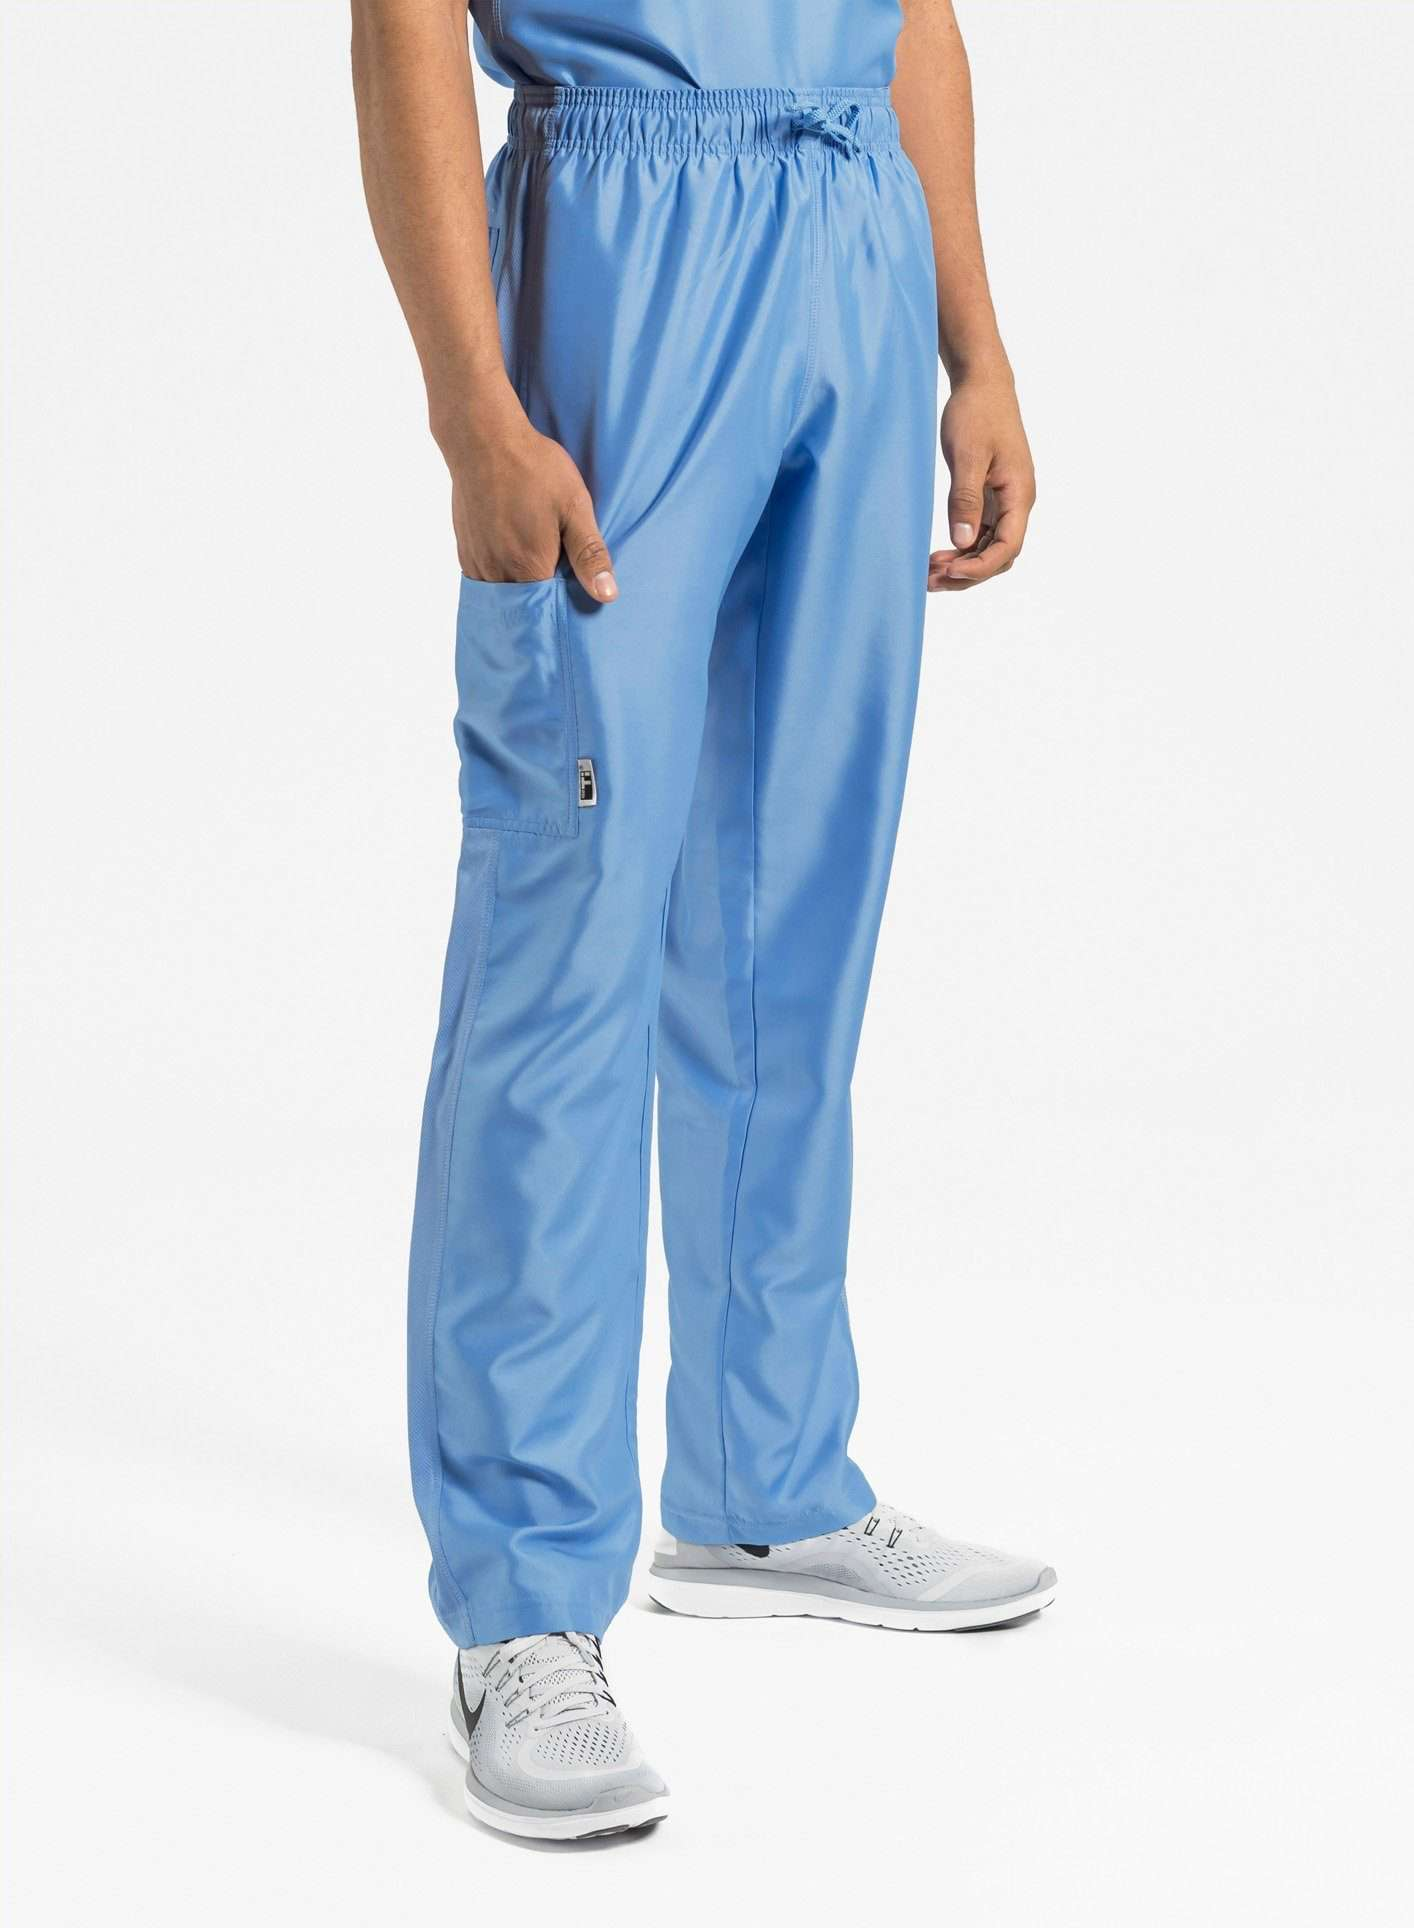 mens Elements short and tall relaxed fit scrub pants ceil blue